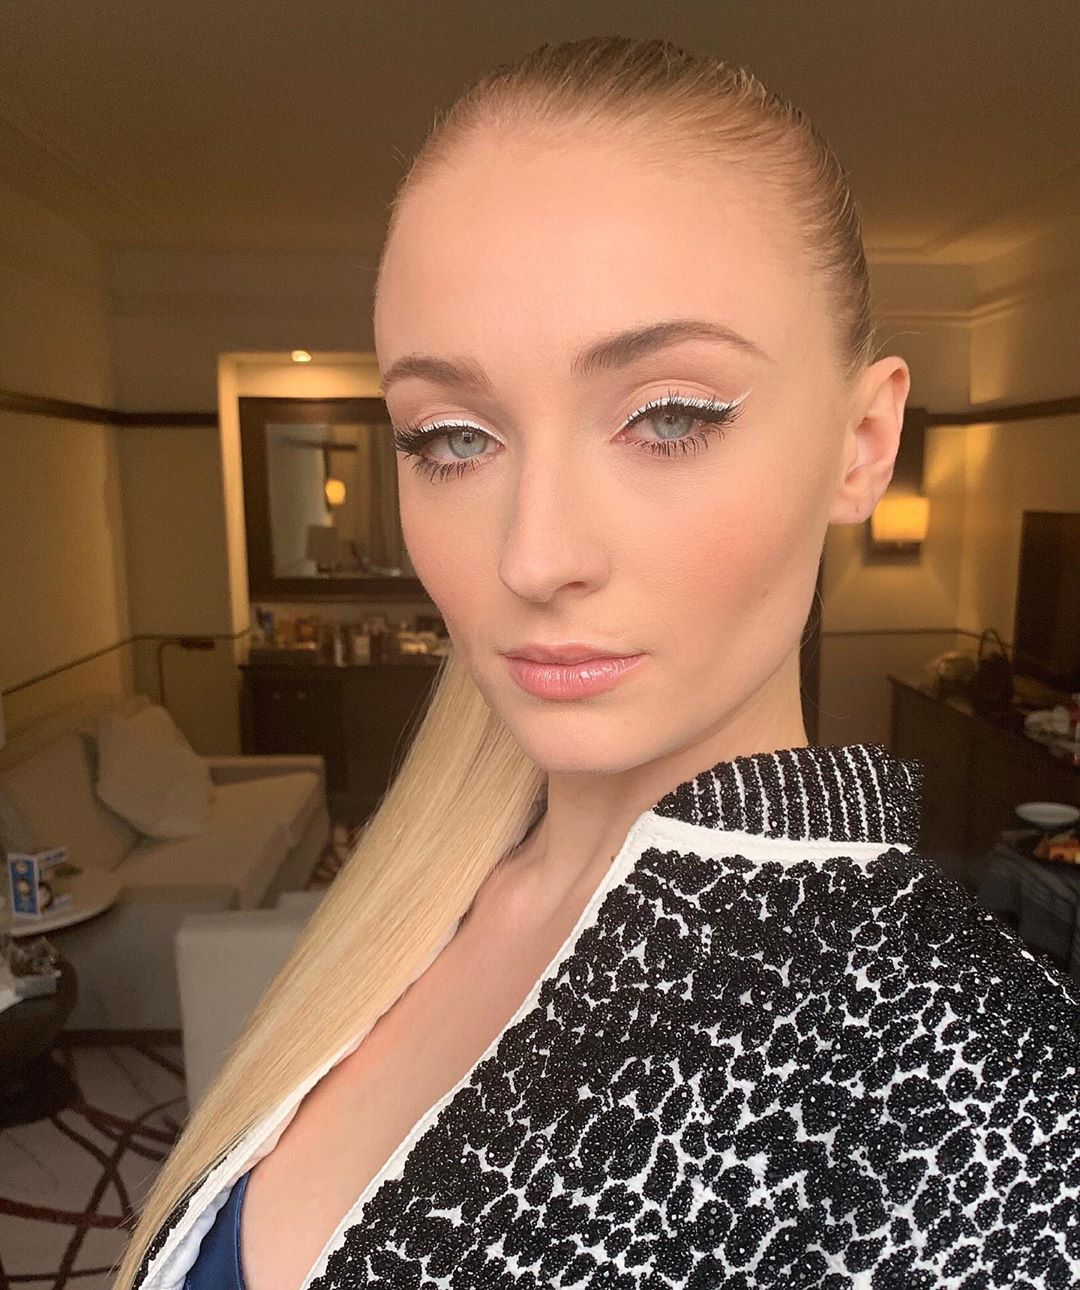 We're obsessed with these Sophie Turner French-girl beauty looks #sophieturner #gameofthrones #beauty  #fren #style #shopping #styles #outfit #pretty #girl #girls #beauty #beautiful #me #cute #stylish #photooftheday #swag #dress #shoes #diy #design #fashion #Makeup